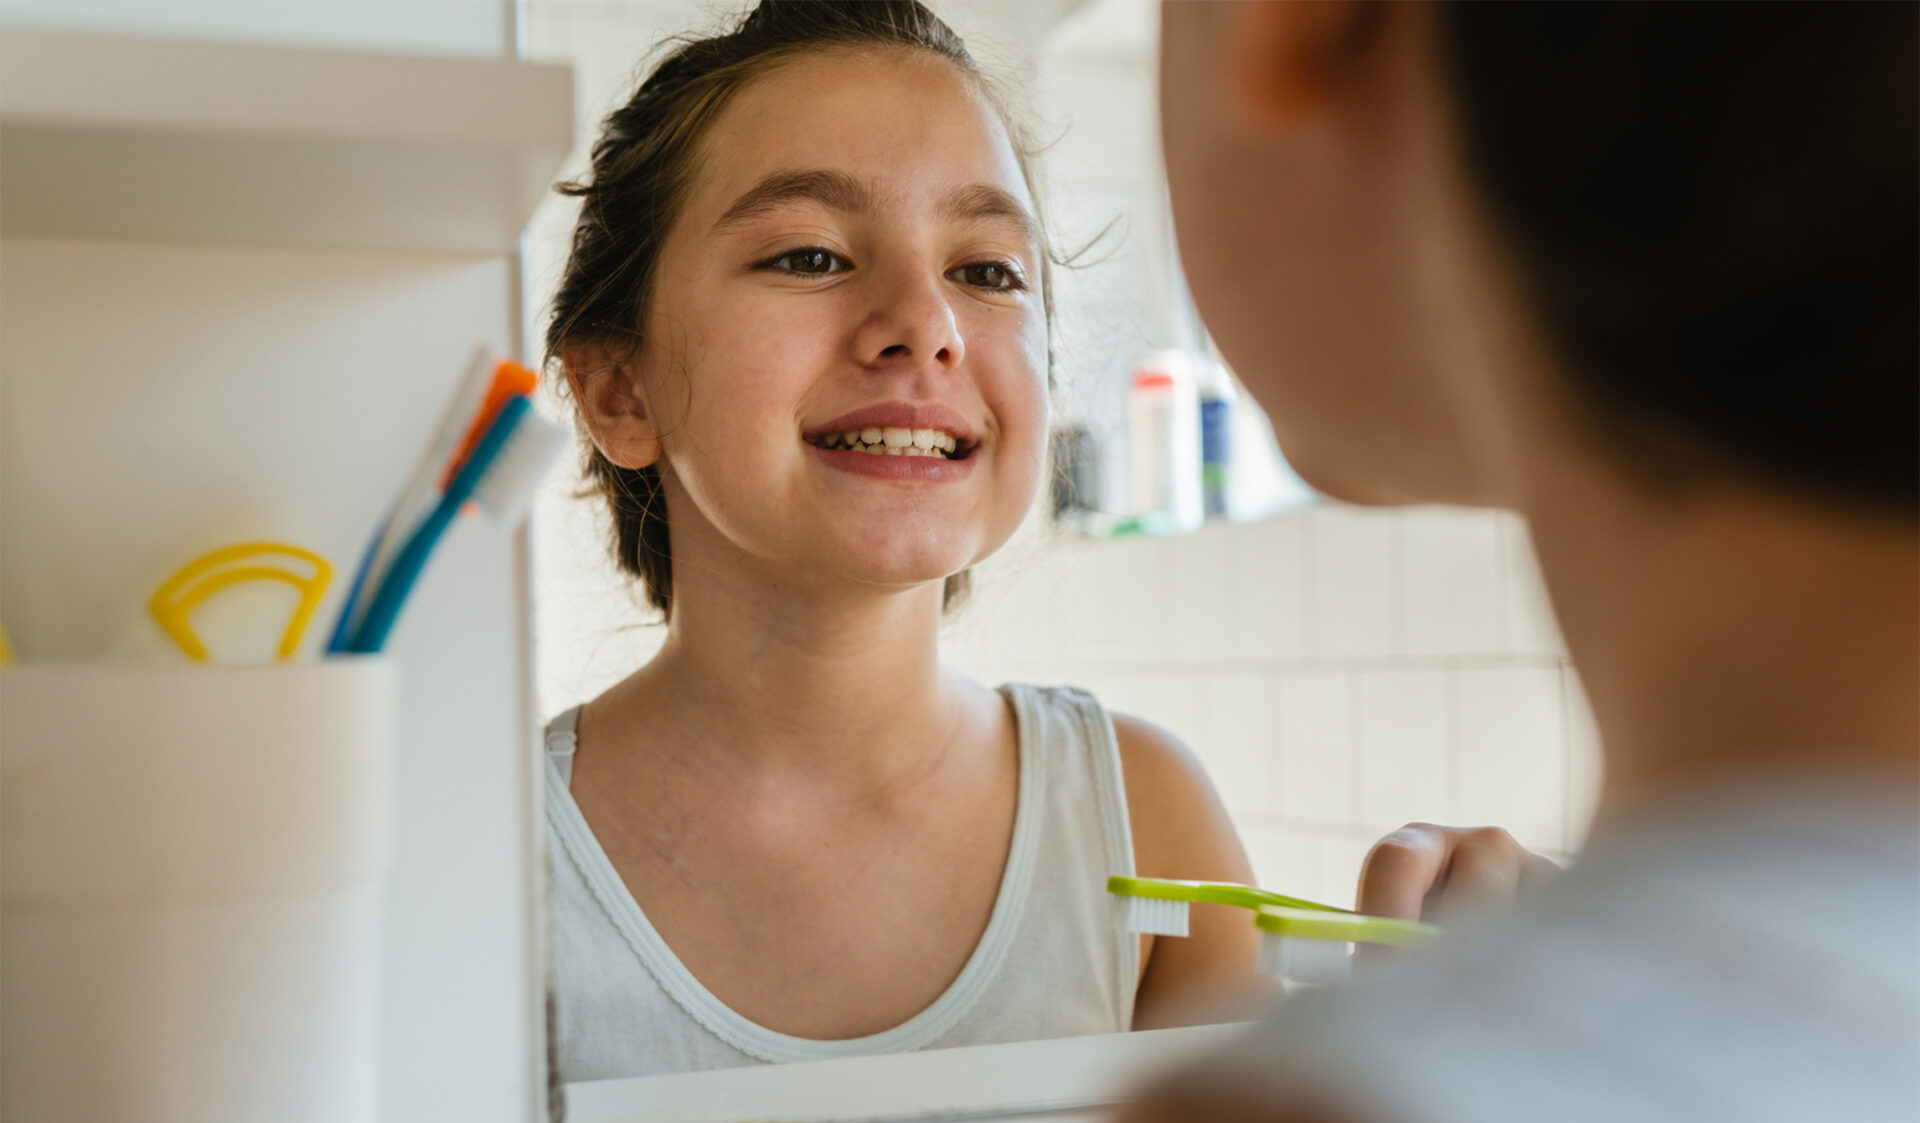 encinitas-dental-designs-services-checkups-and-cleanings